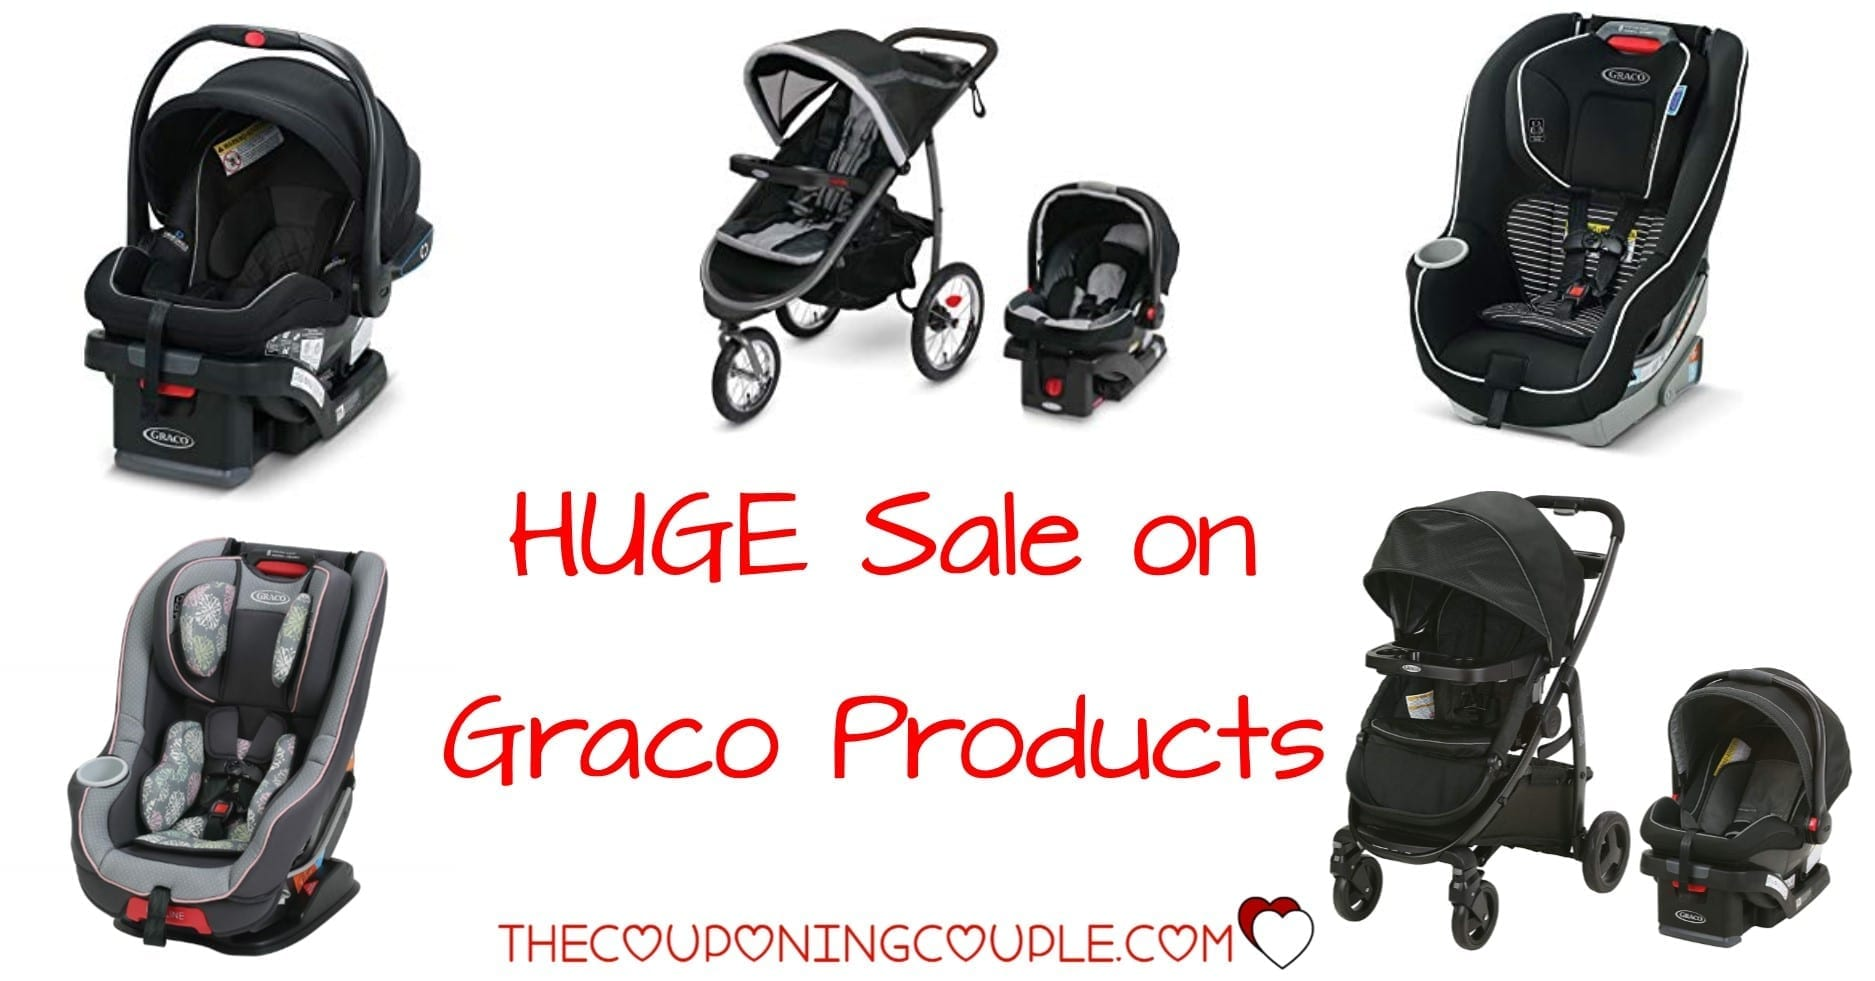 Graco Baby Products Deals ~ HUGE Sale on Graco Products Today (11/27) ONLY!